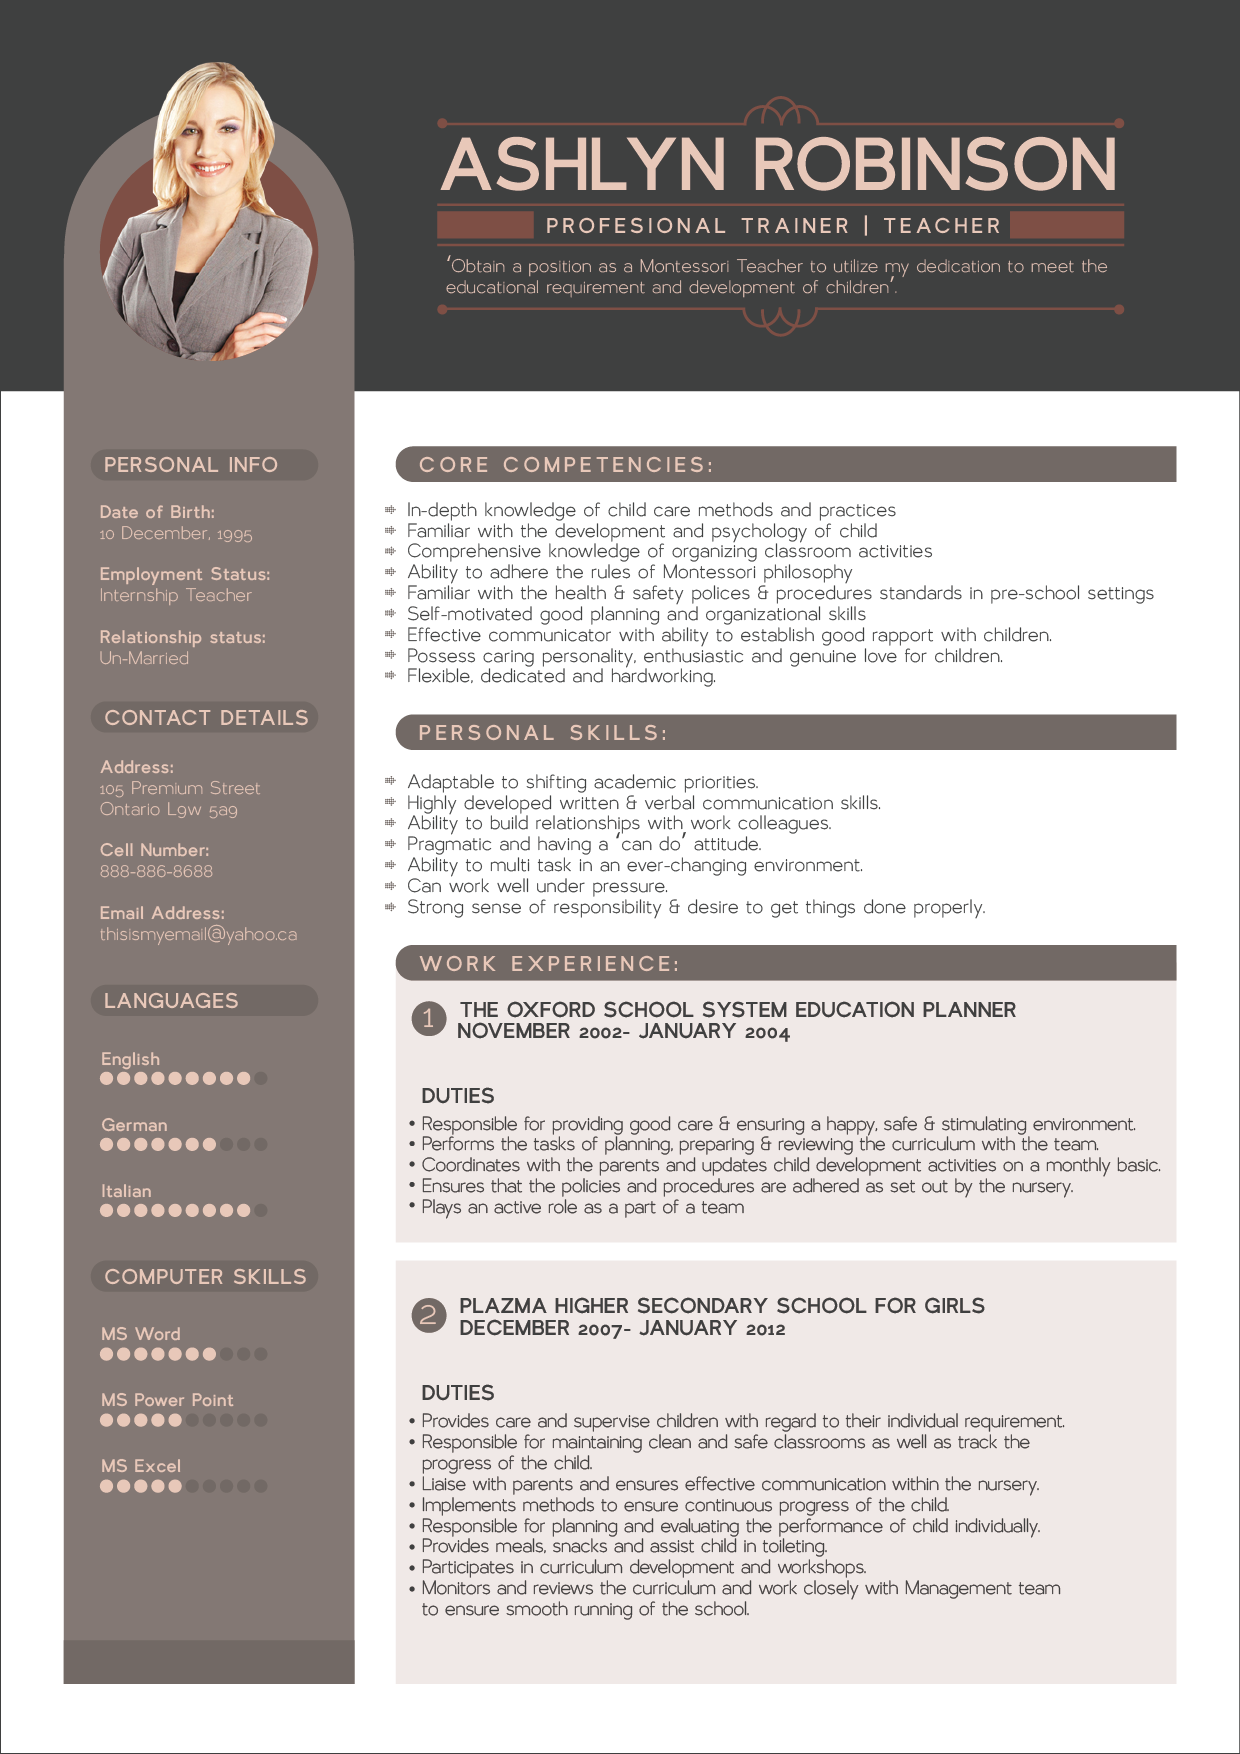 free resume cv design template for trainers teachers good resume. Black Bedroom Furniture Sets. Home Design Ideas